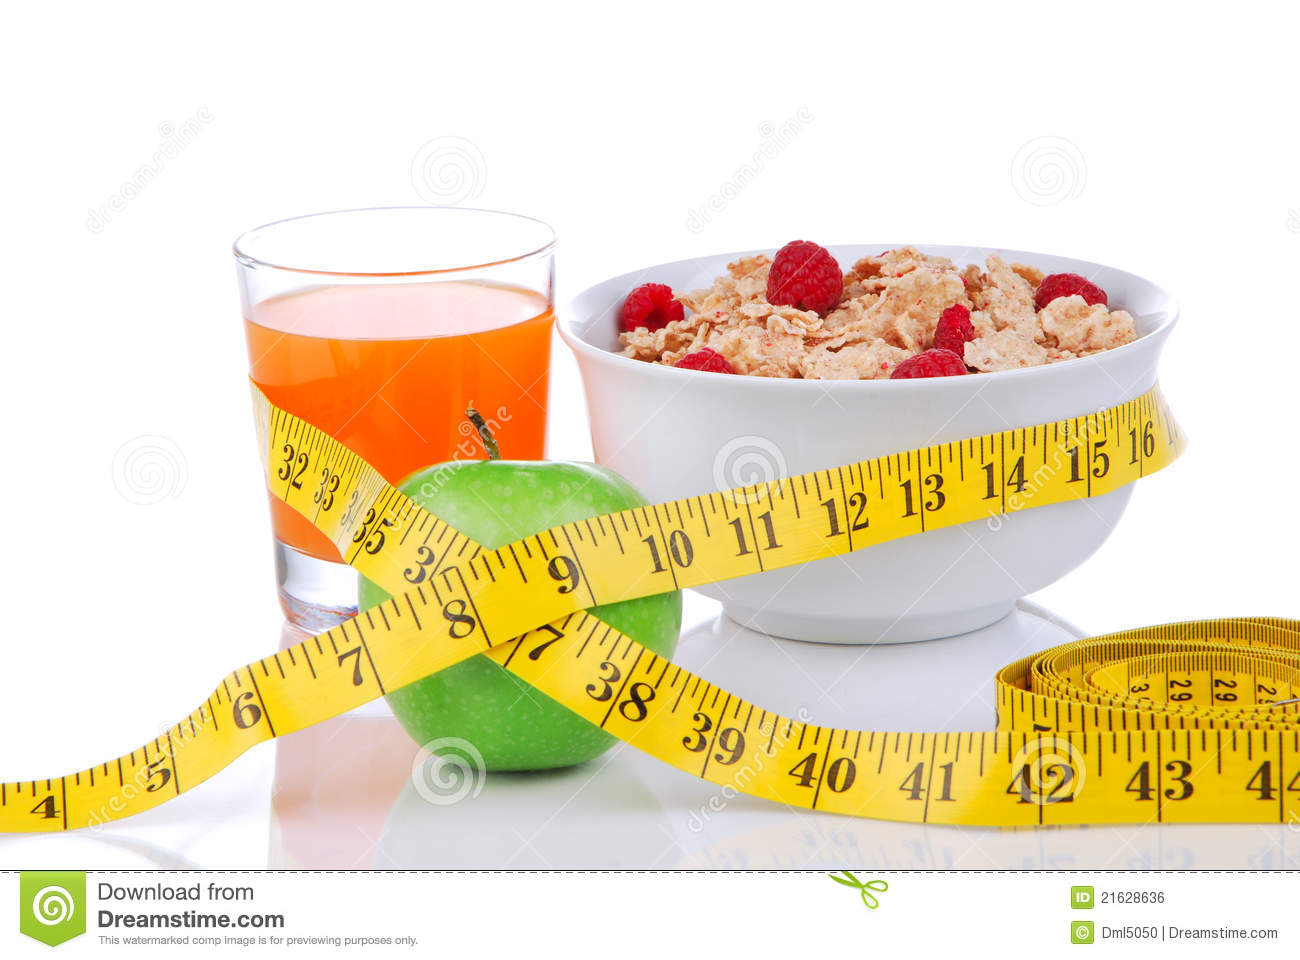 Diet Weight Loss Concept With Tape Measure Apple Royalty Free Stock Image - Image: 21628636